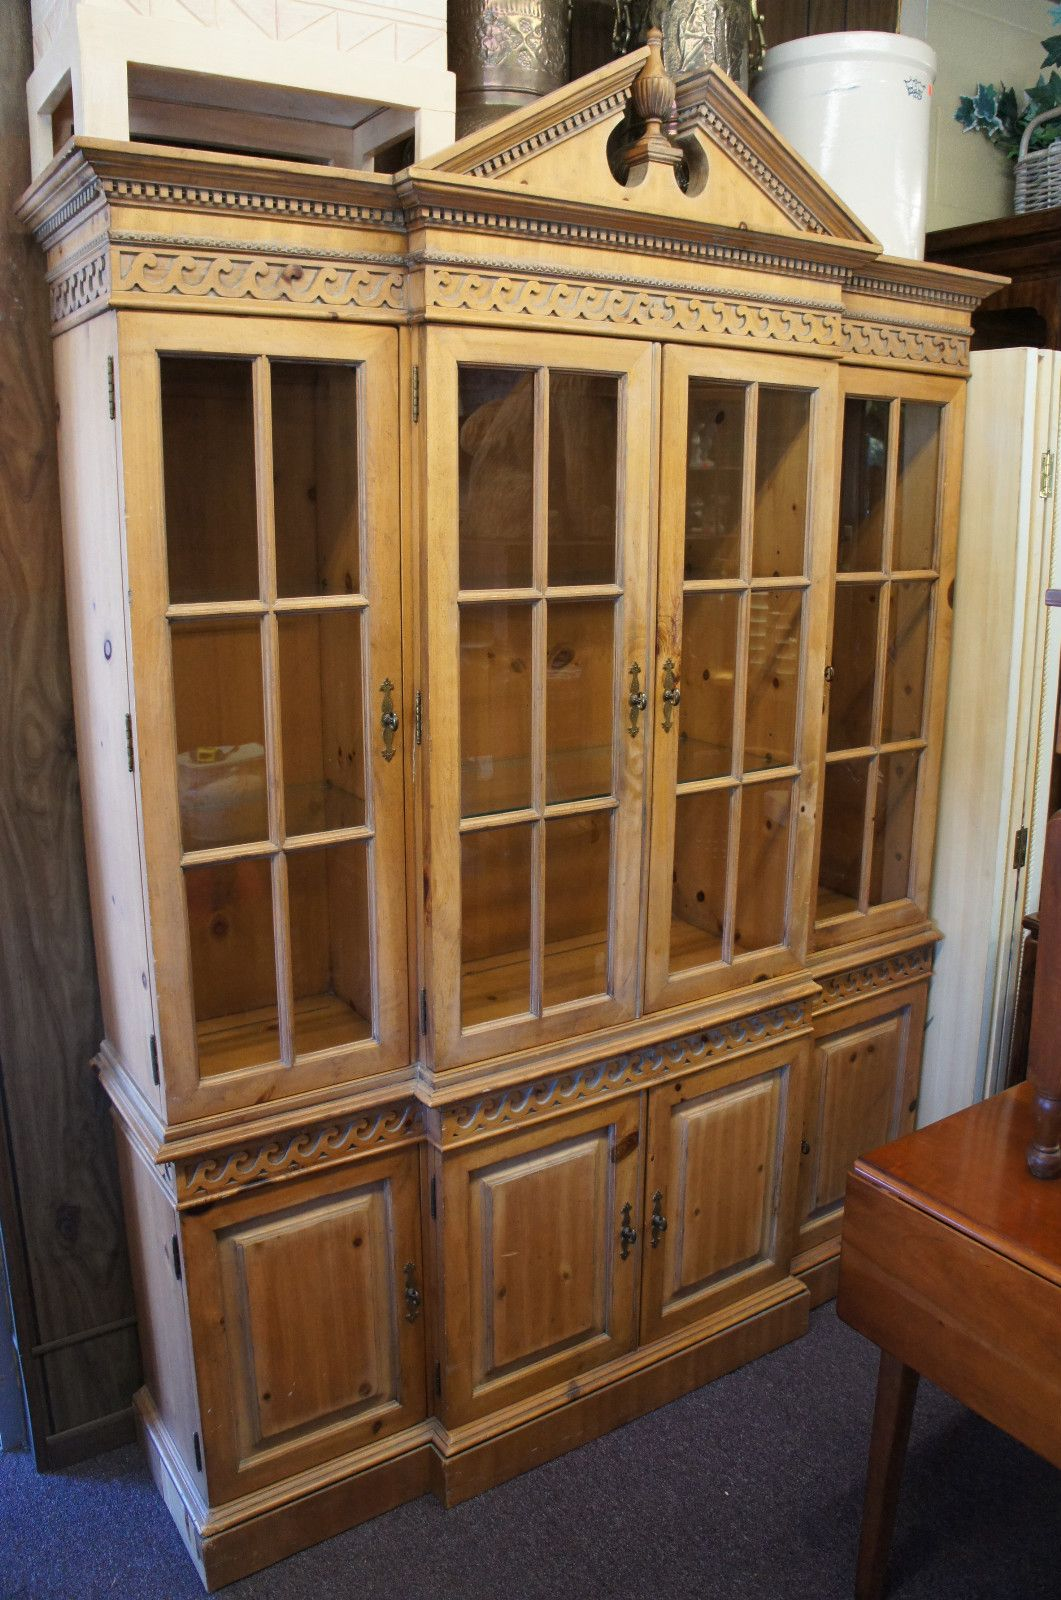 French country china cabinets - Drexel Heritage Pine Curio China Cabinet Glass Shelves French Country Lit Ships Ebay